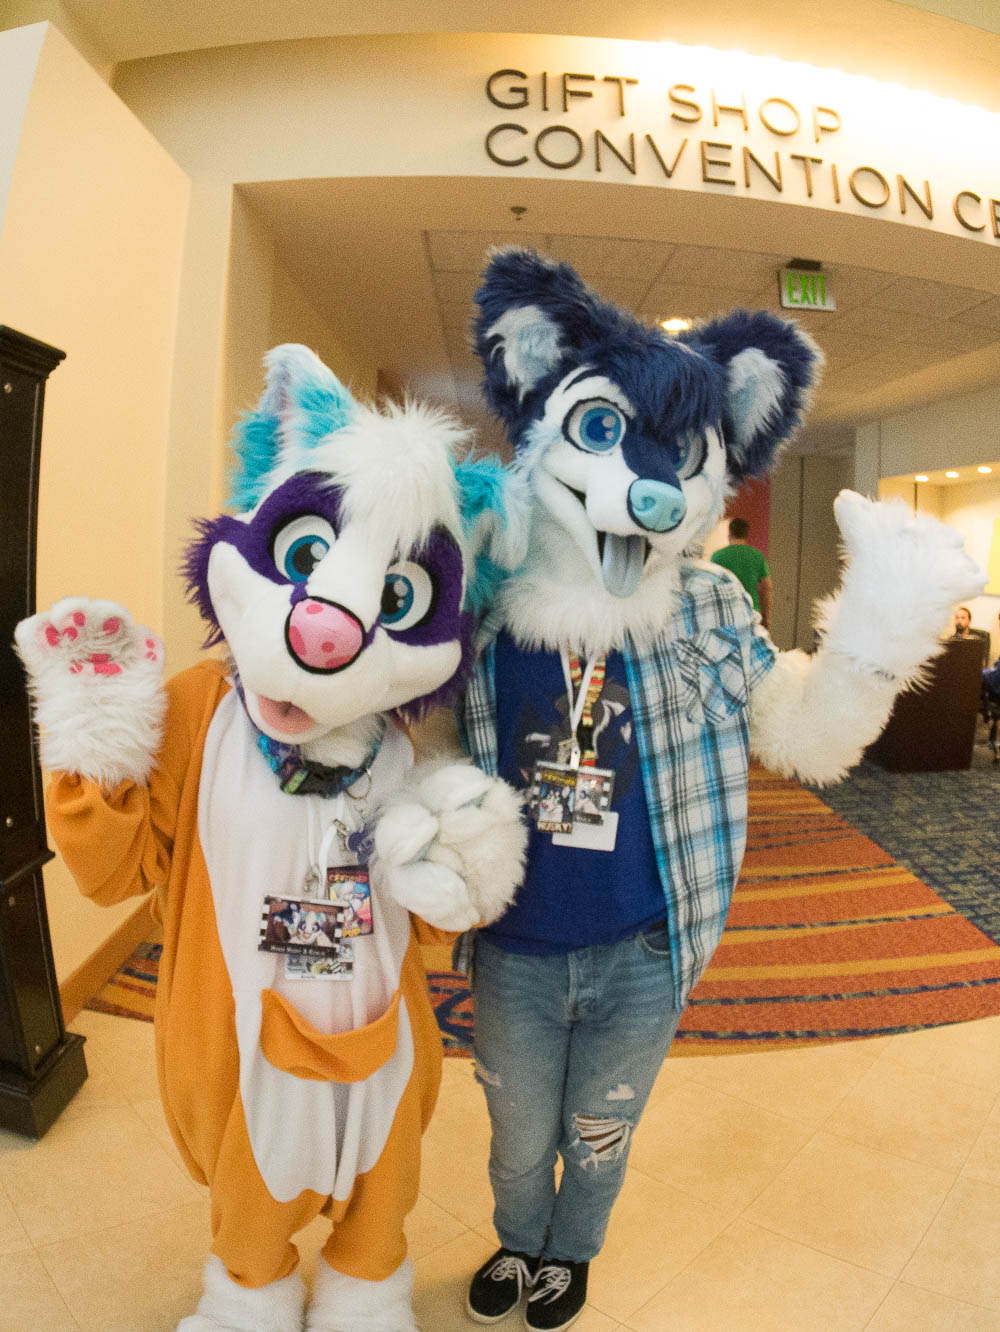 MegaKewlie and HowieHusky at Megaplex, taken by others! (pgasael Twitter Moment, missing pictures.)